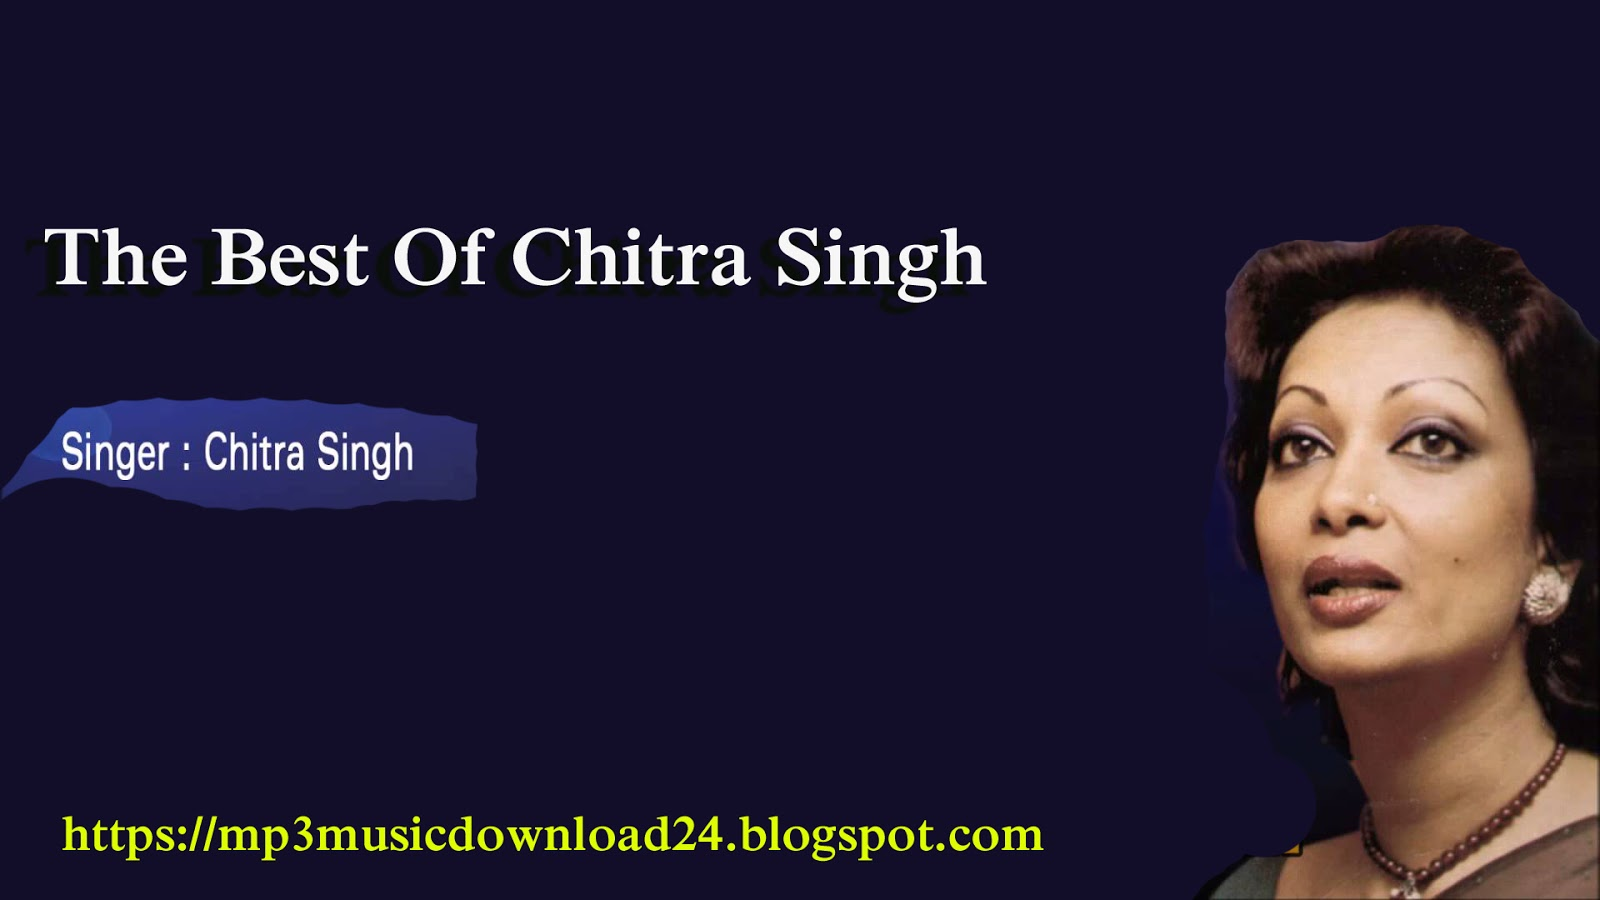 Mp3 Music Download: The Best Of Chitra Singh Bangla mp3 Song